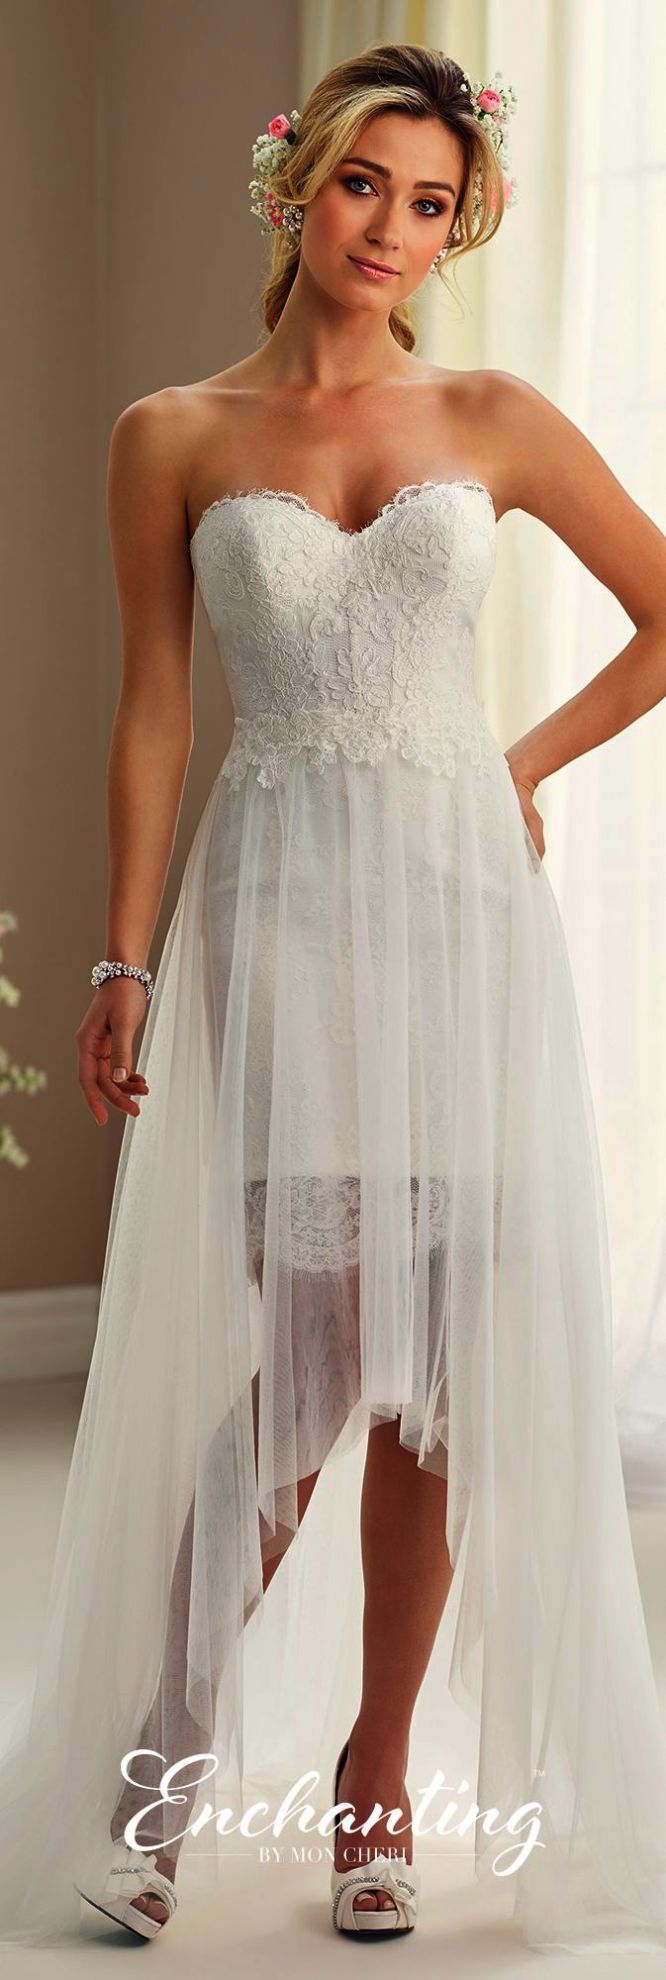 Boho lace strapless wedding dress lace mermaid wedding dress low